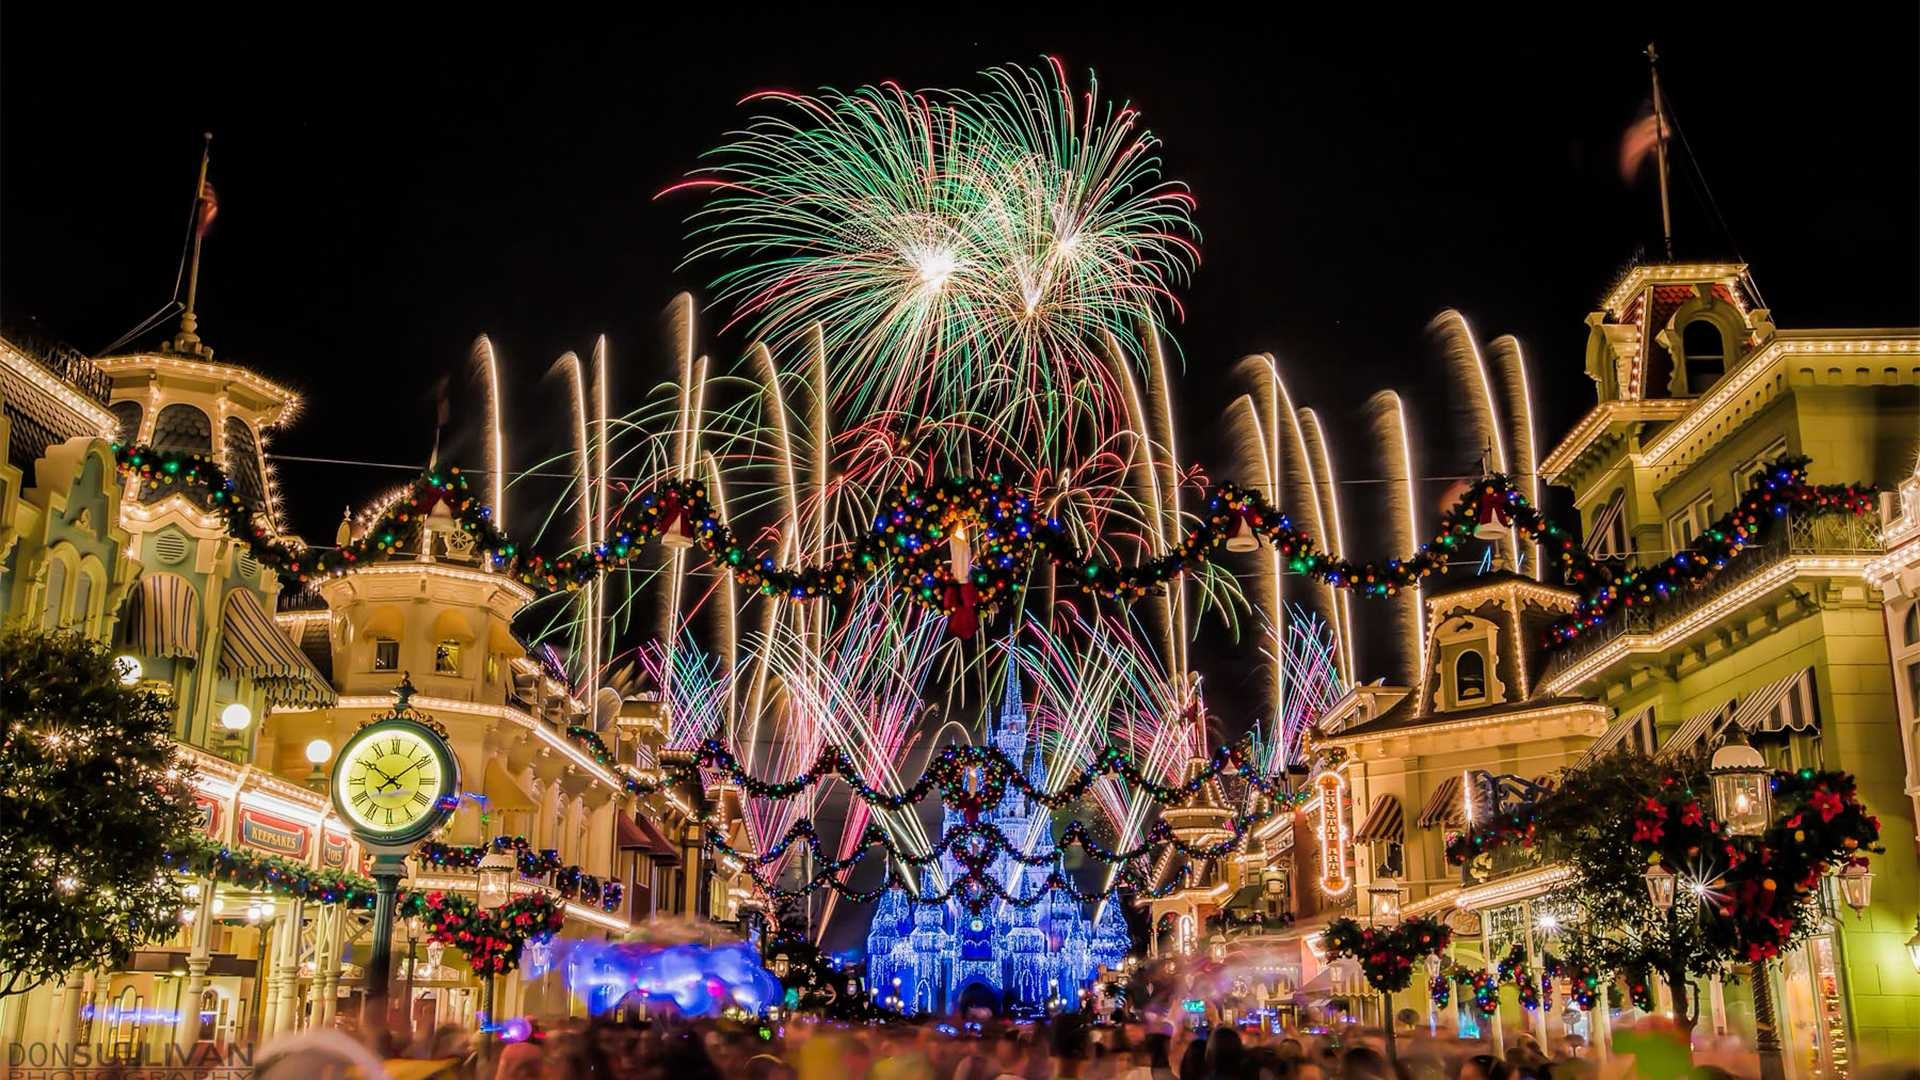 Hd Disney World Wallpaper Posted By Ethan Johnson